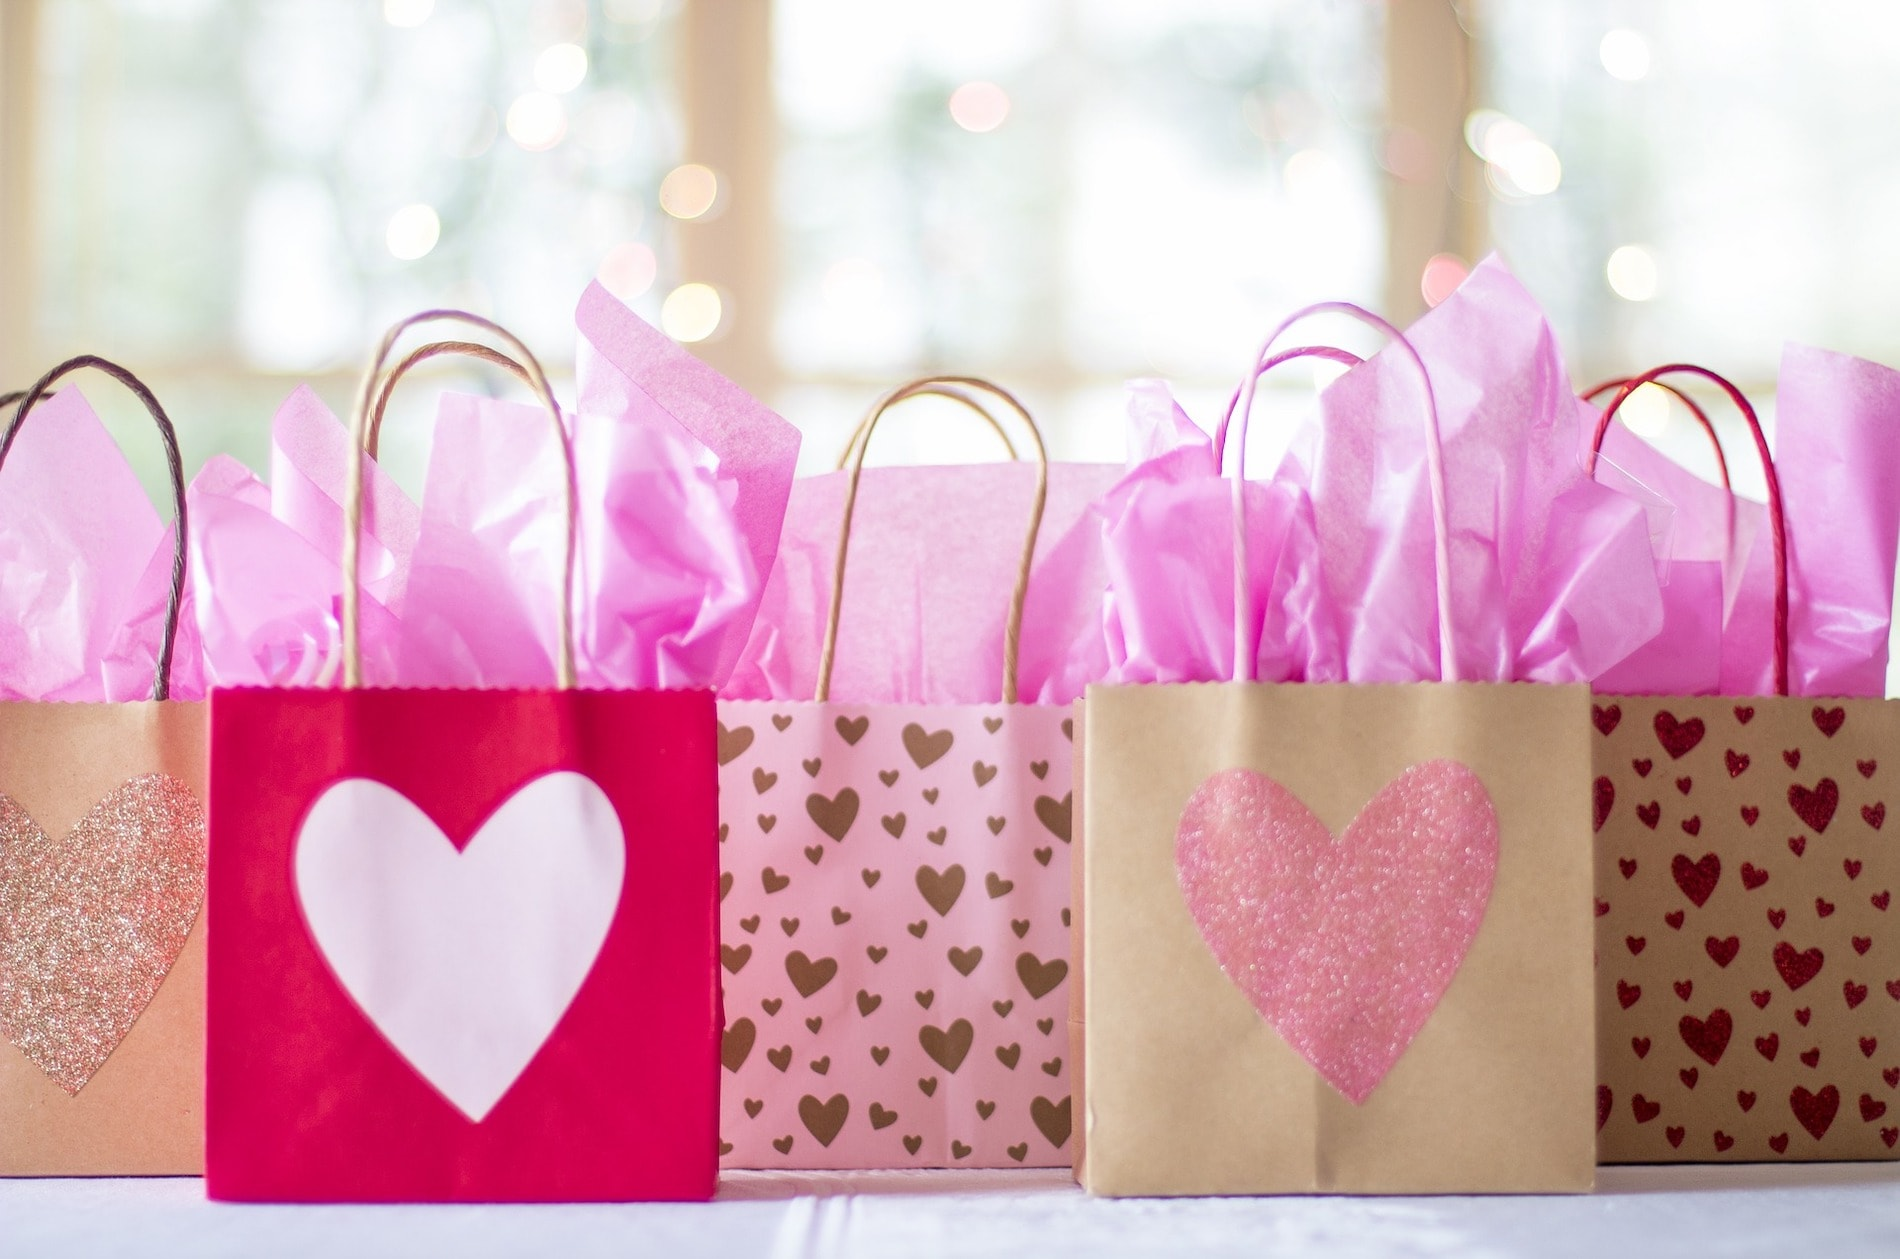 Gift bags filled with tissue paper